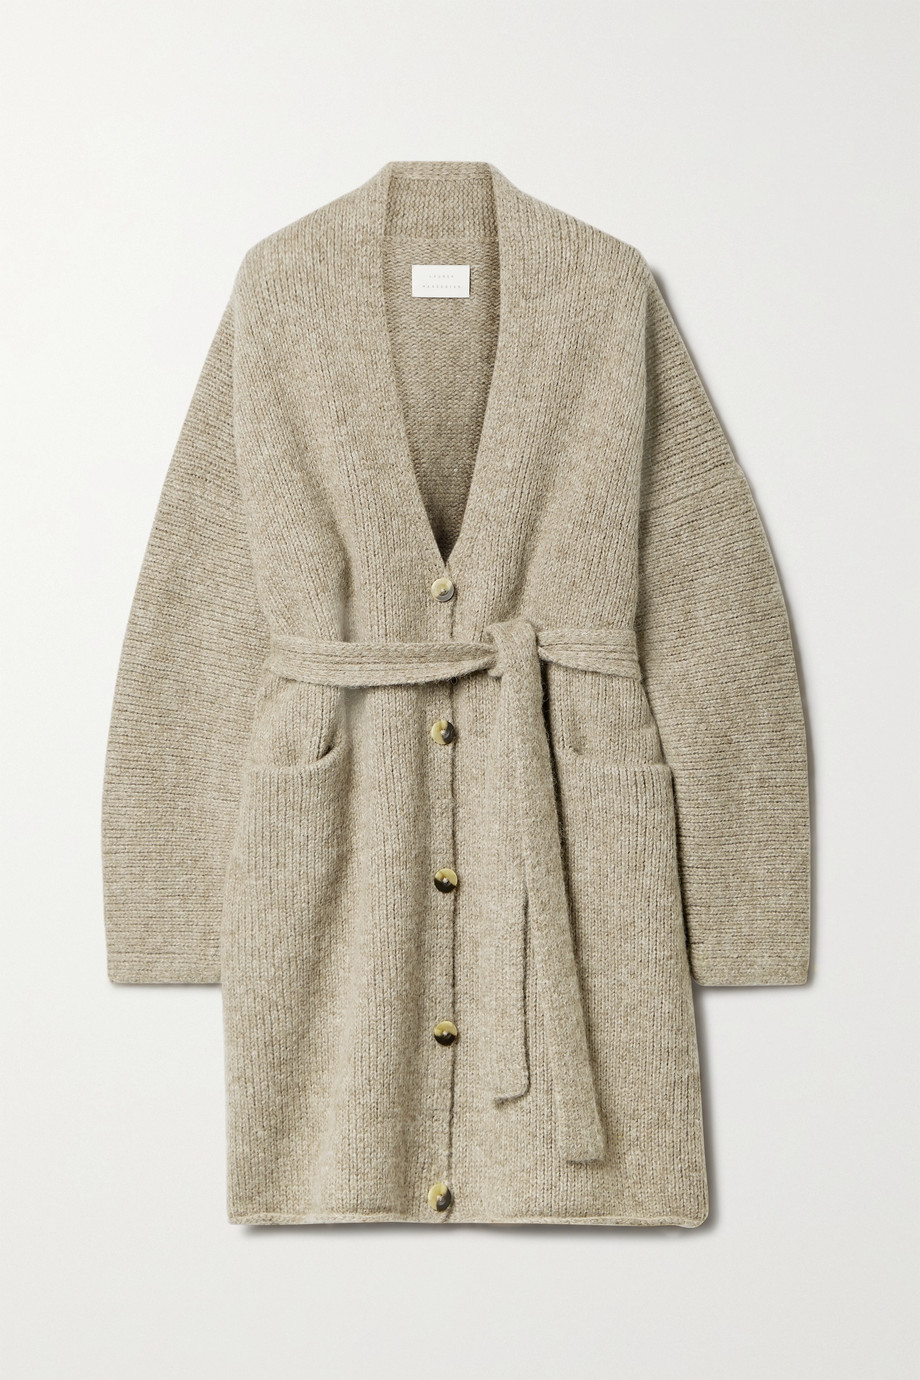 Lauren Manoogian Belted knitted cardigan